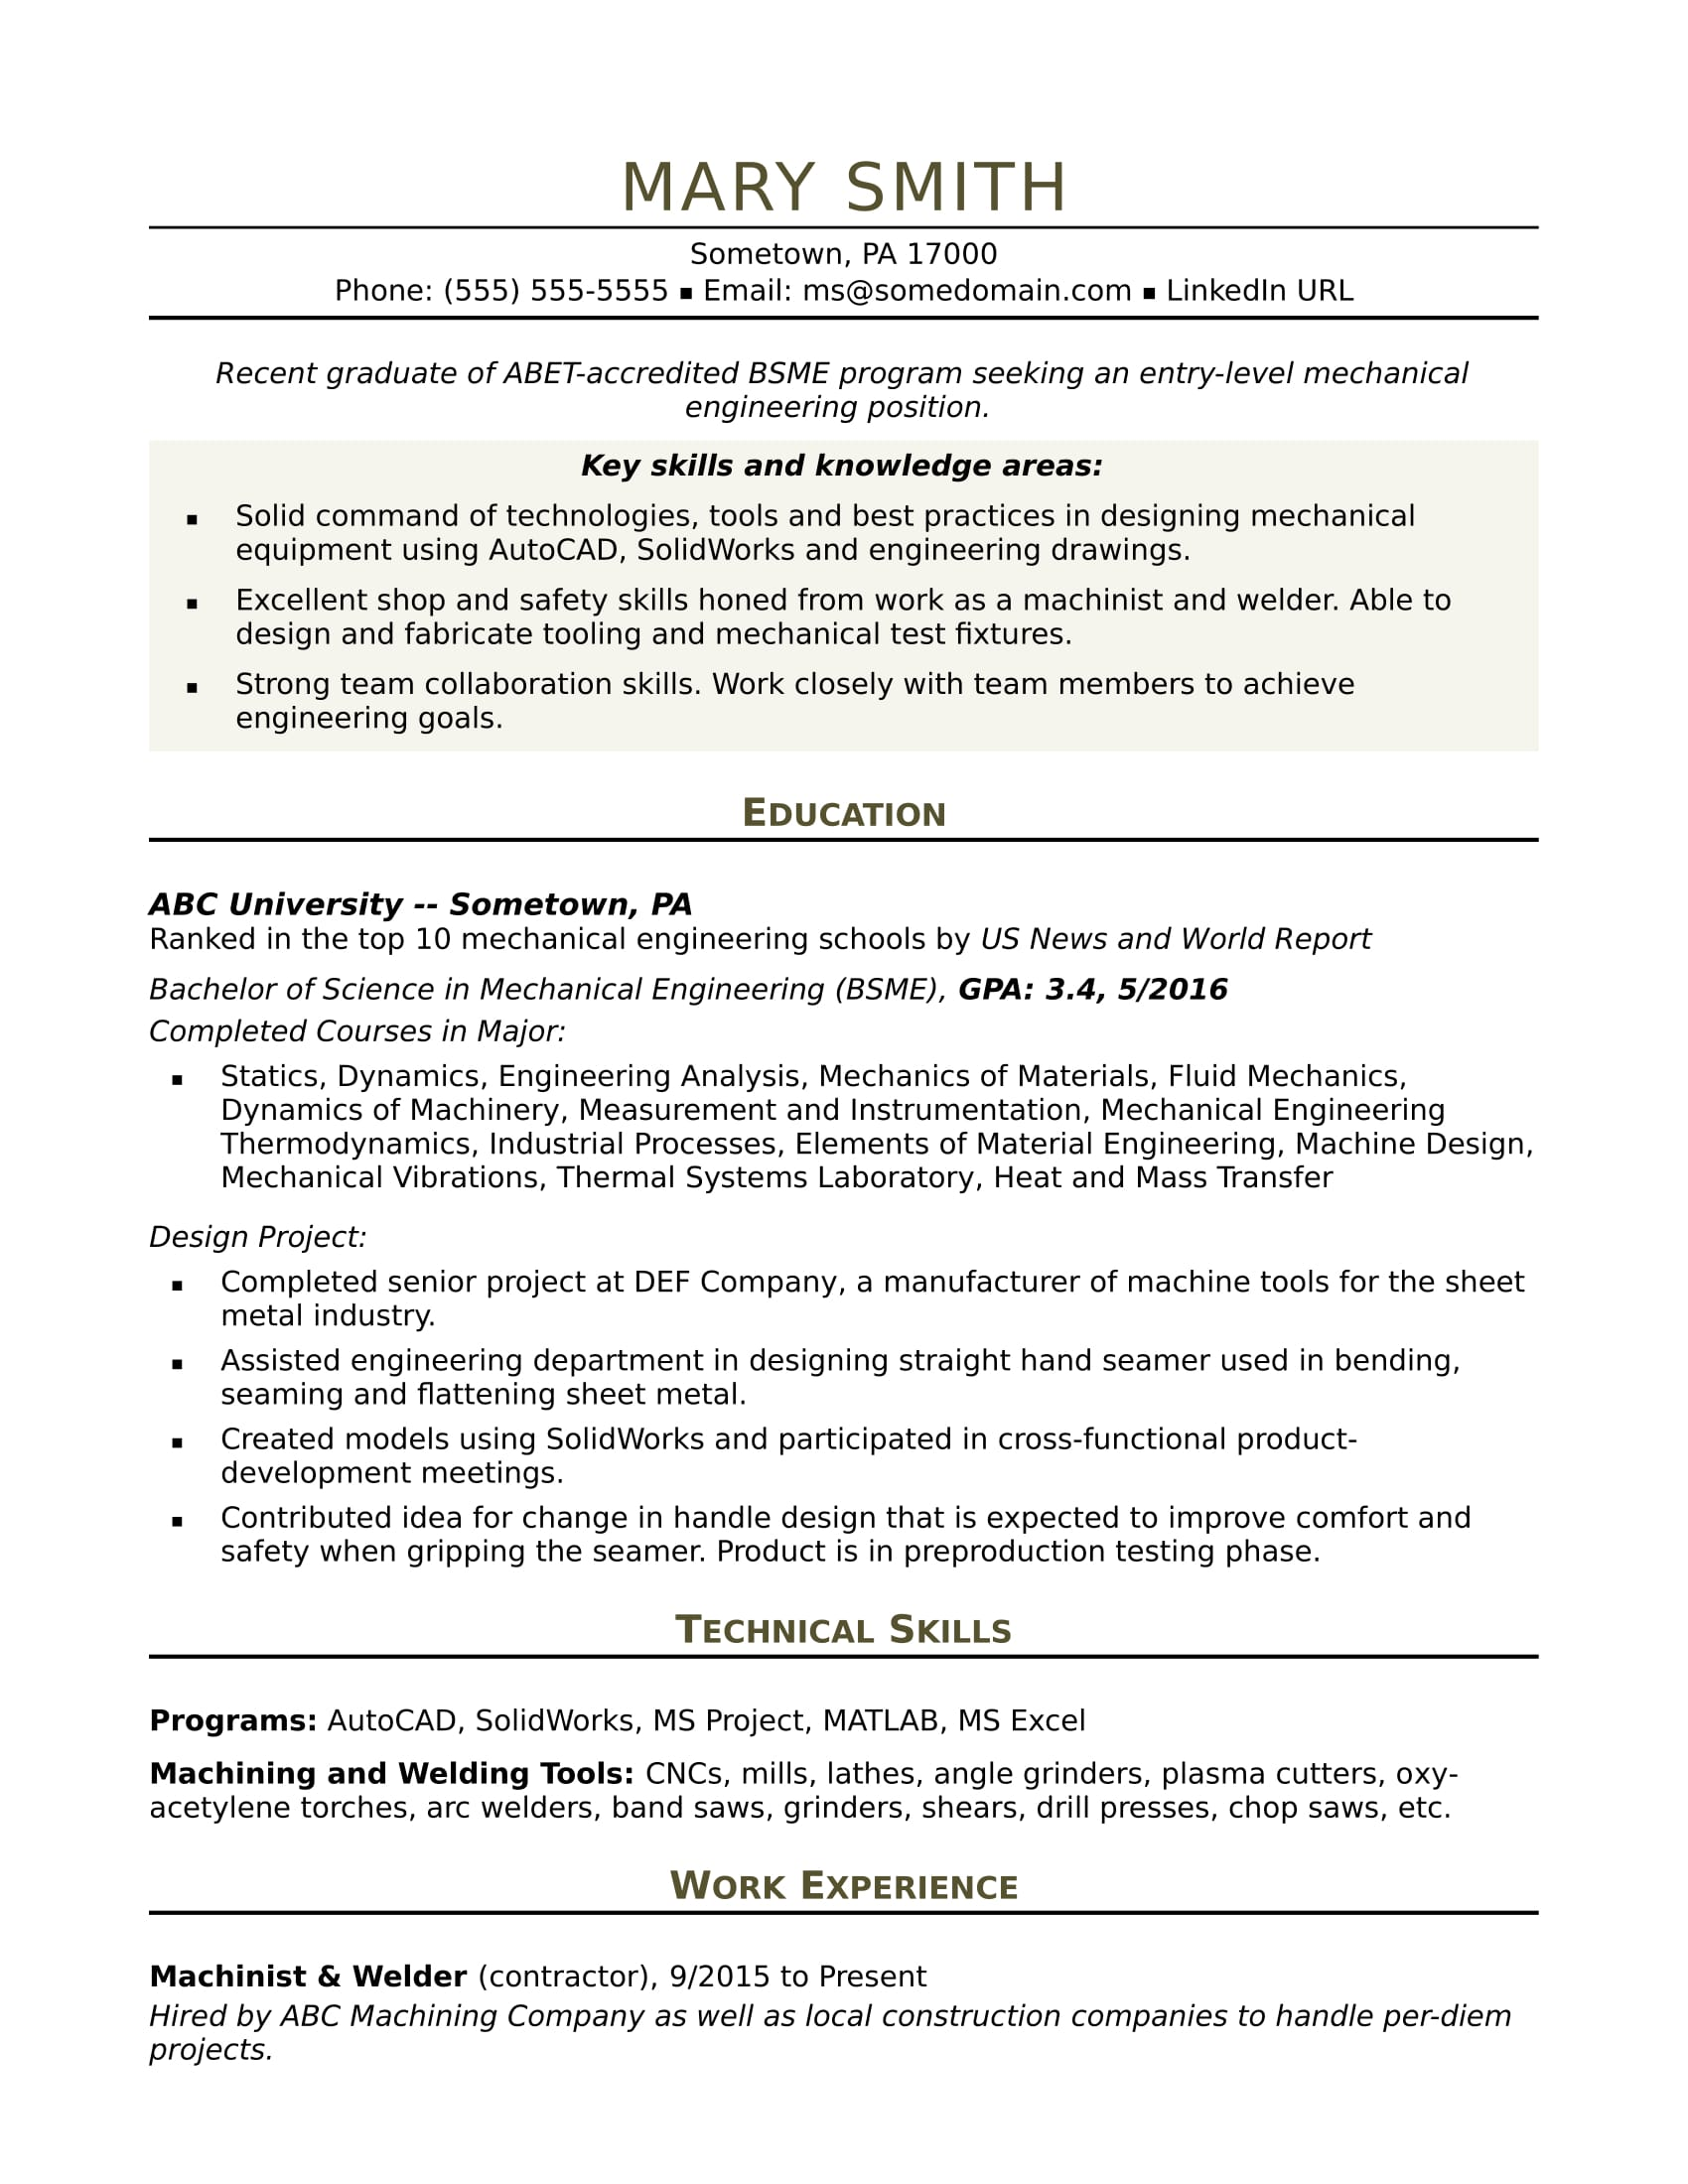 sample resume for an entry level mechanical engineer monster professional summary Resume Professional Summary For Engineering Resume